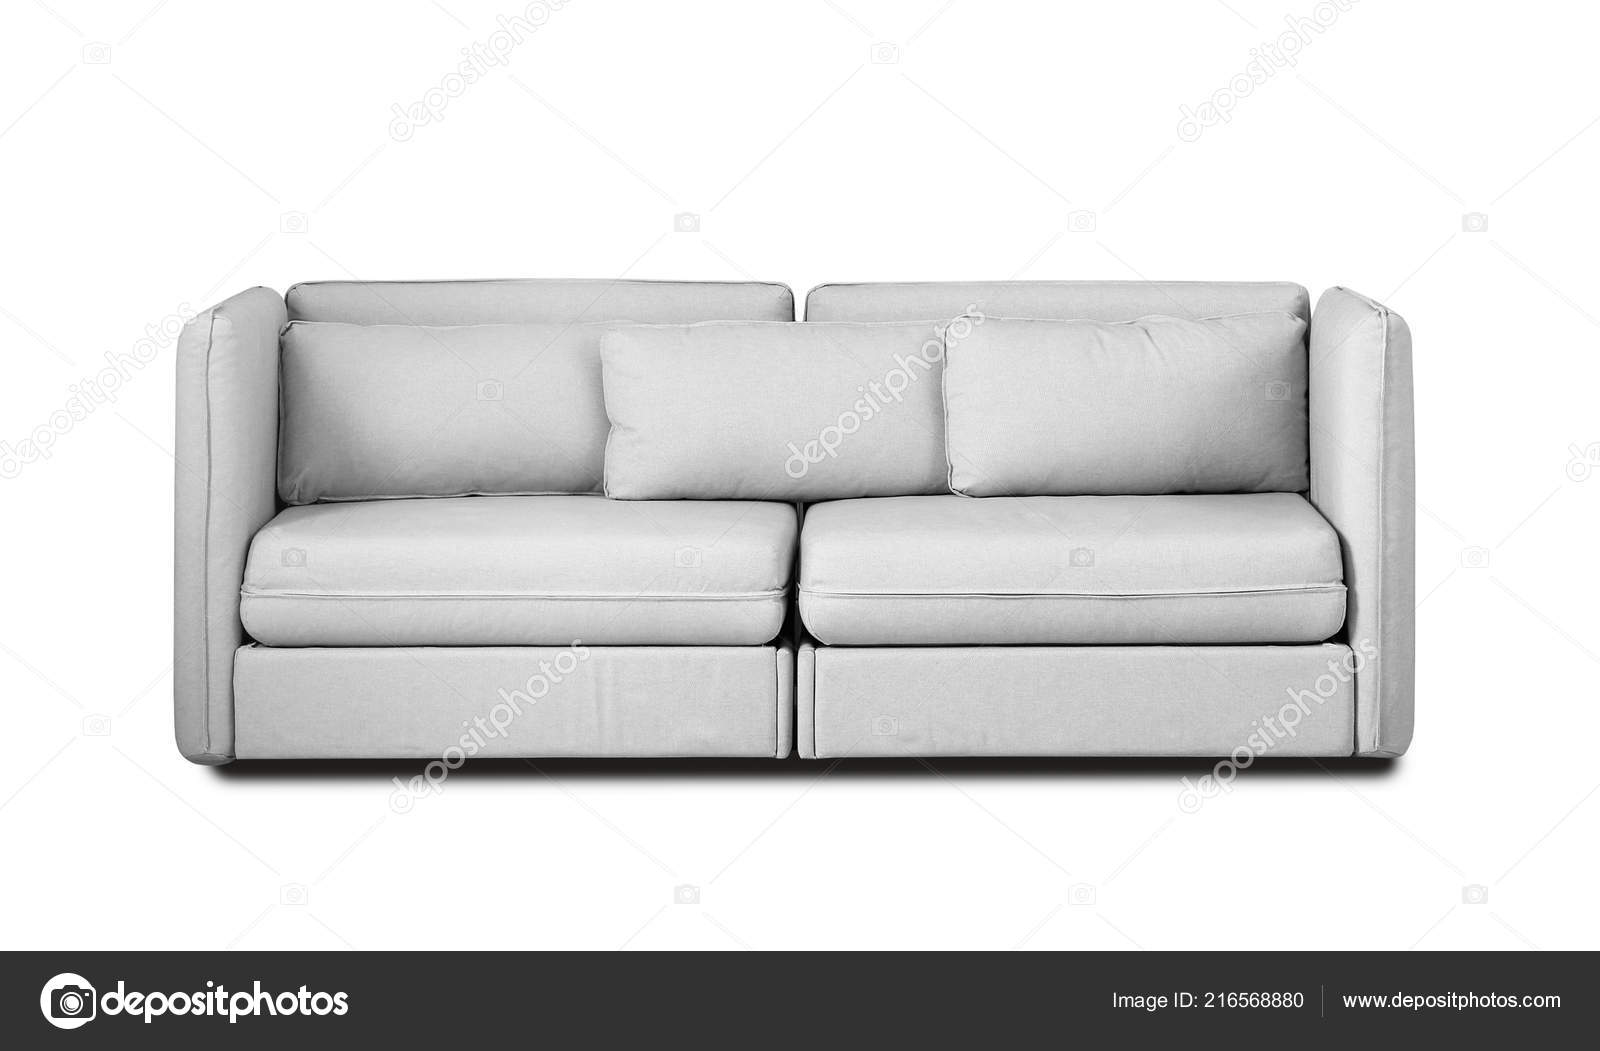 Stupendous Comfortable Sofa White Background Furniture Modern Room Gamerscity Chair Design For Home Gamerscityorg